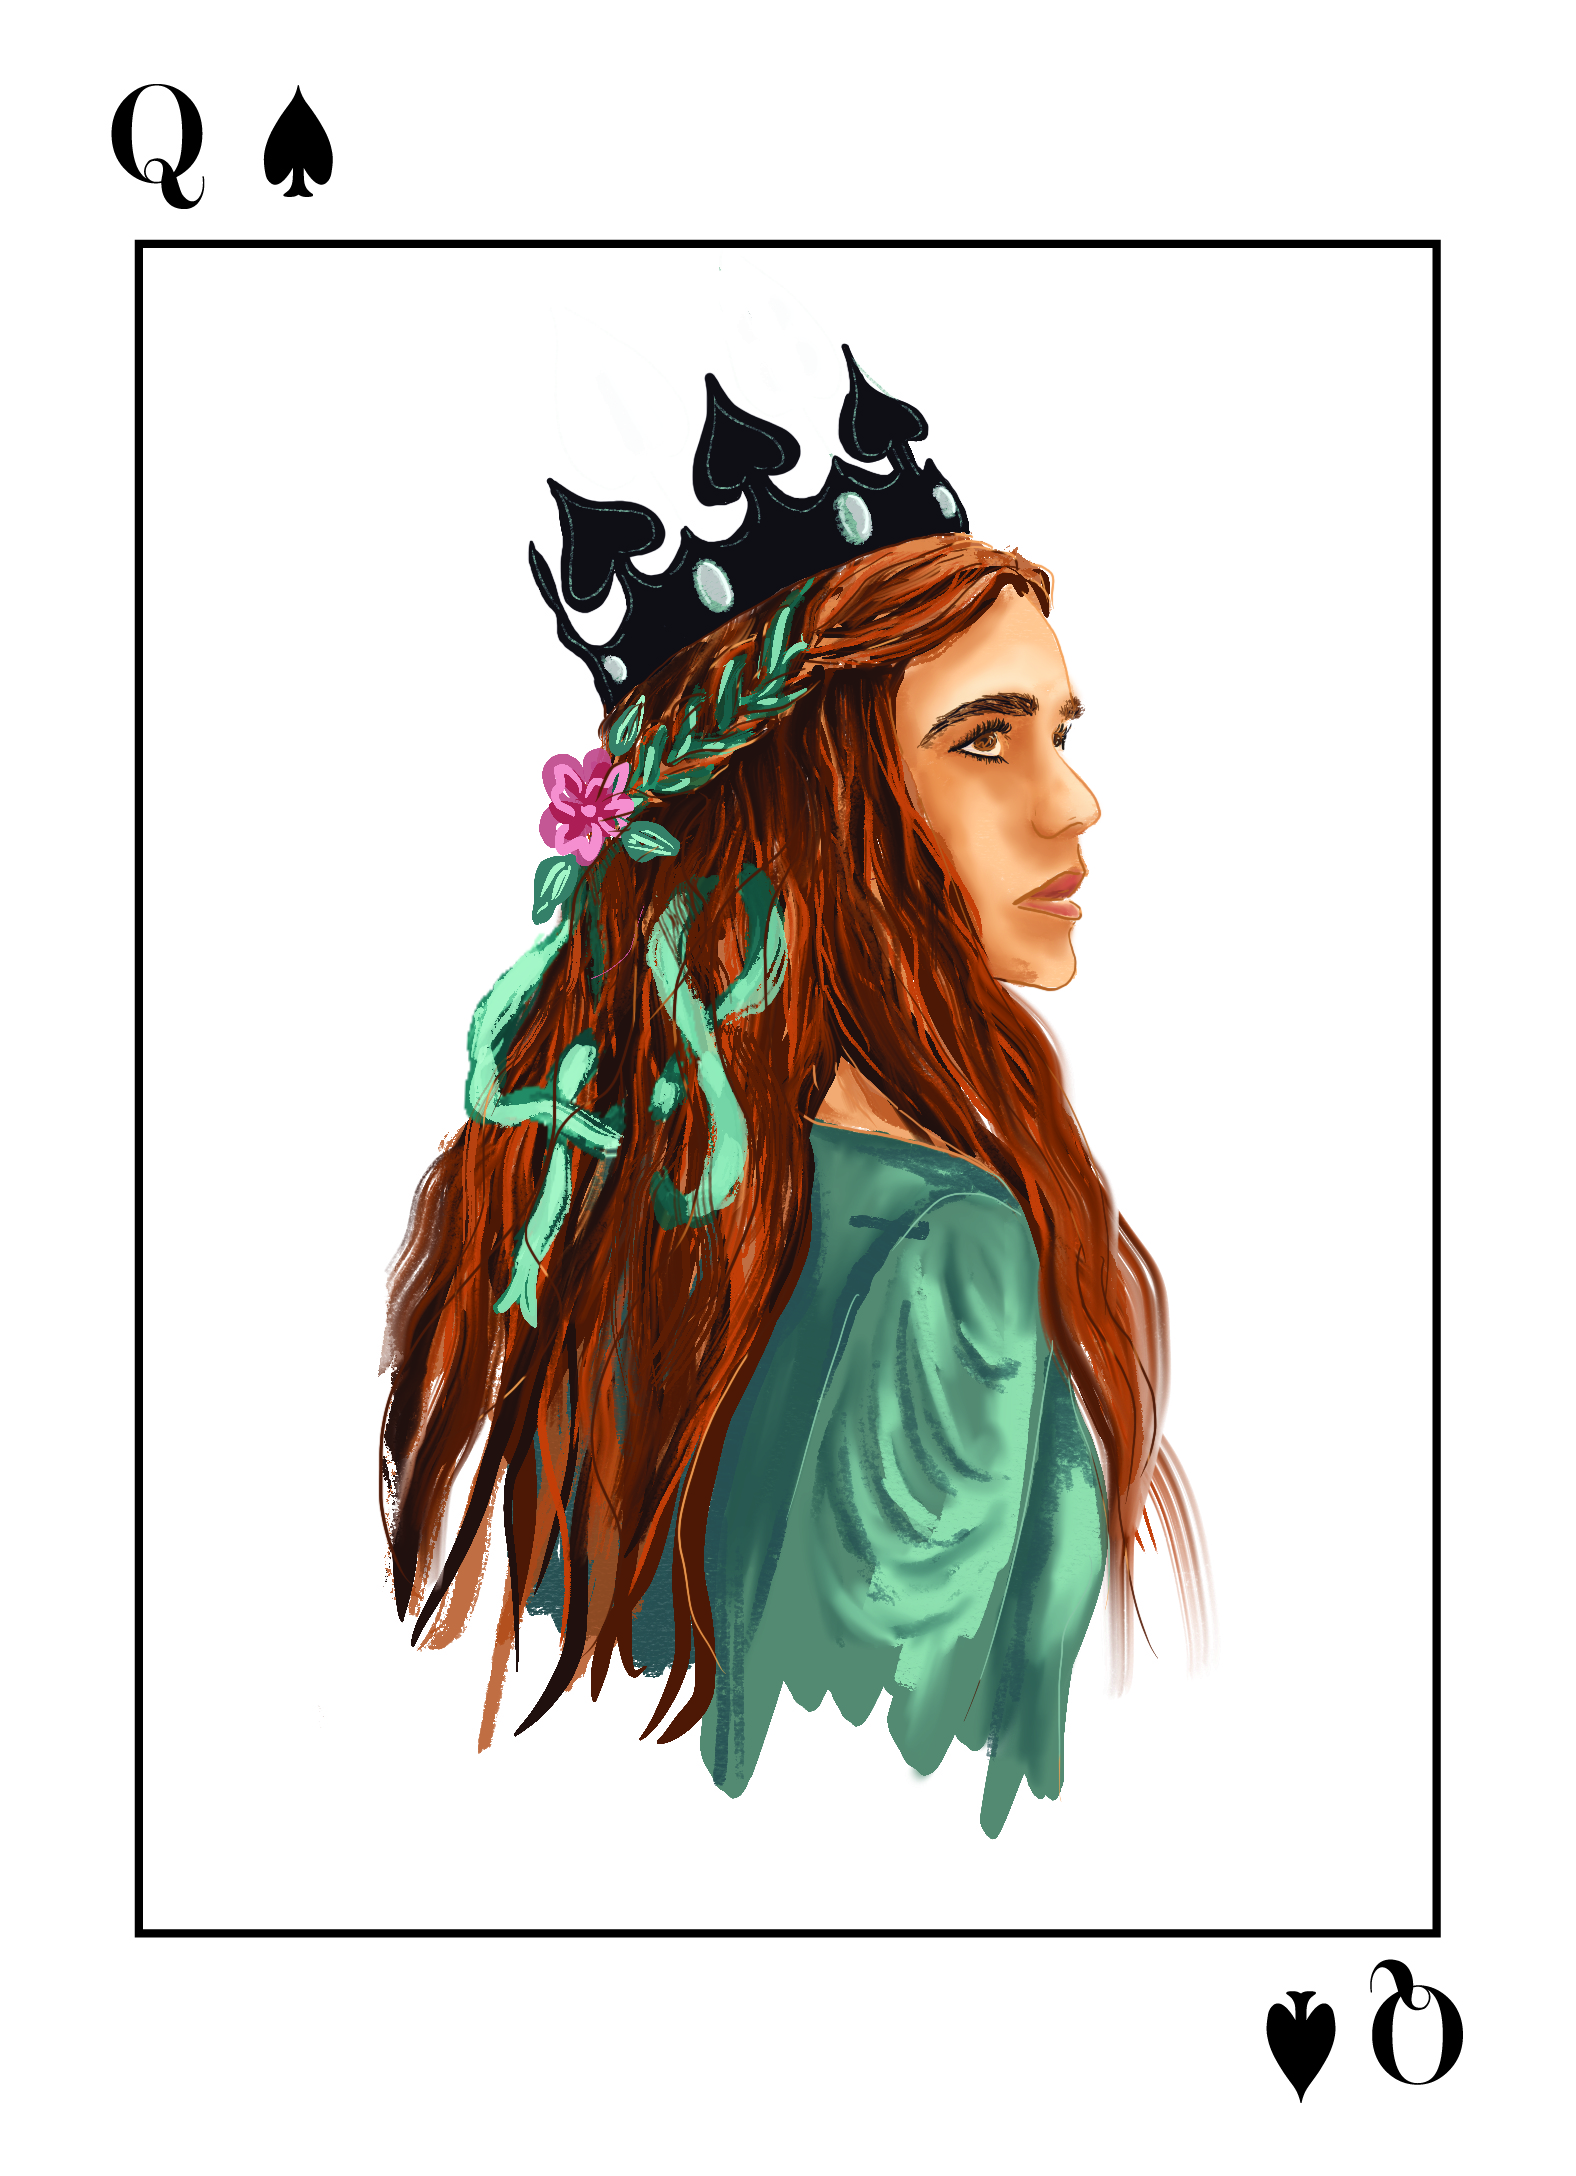 Queen of Spades - Mnemonica and Aronson